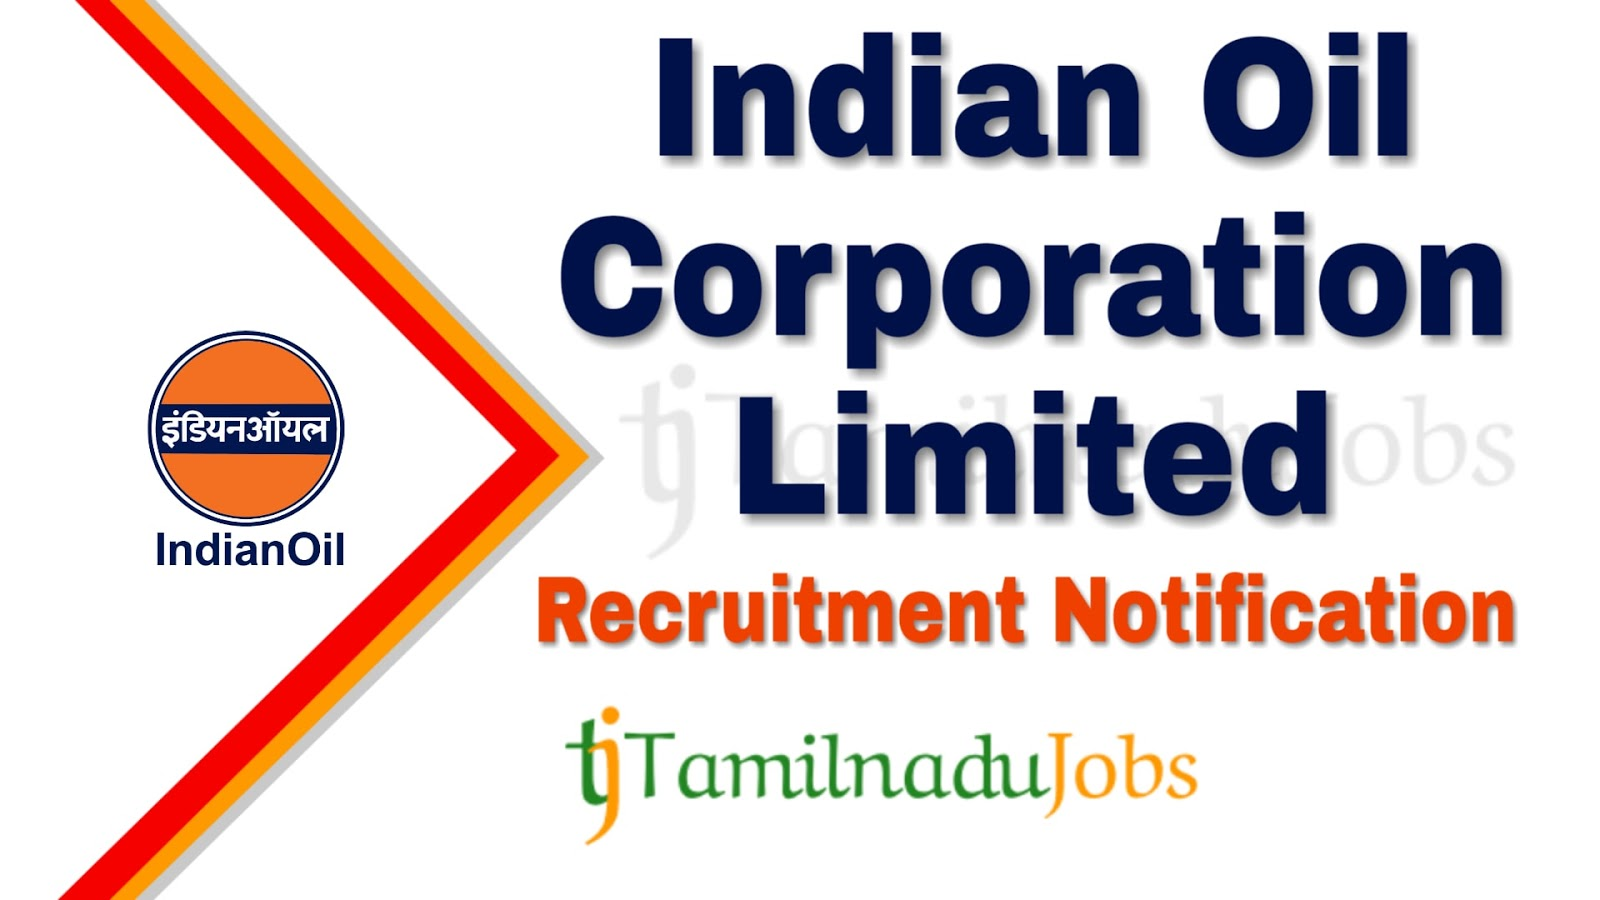 IOCL recruitment notification 2019, govt jobs in India, central govt jobs, govt jobs for diploma,